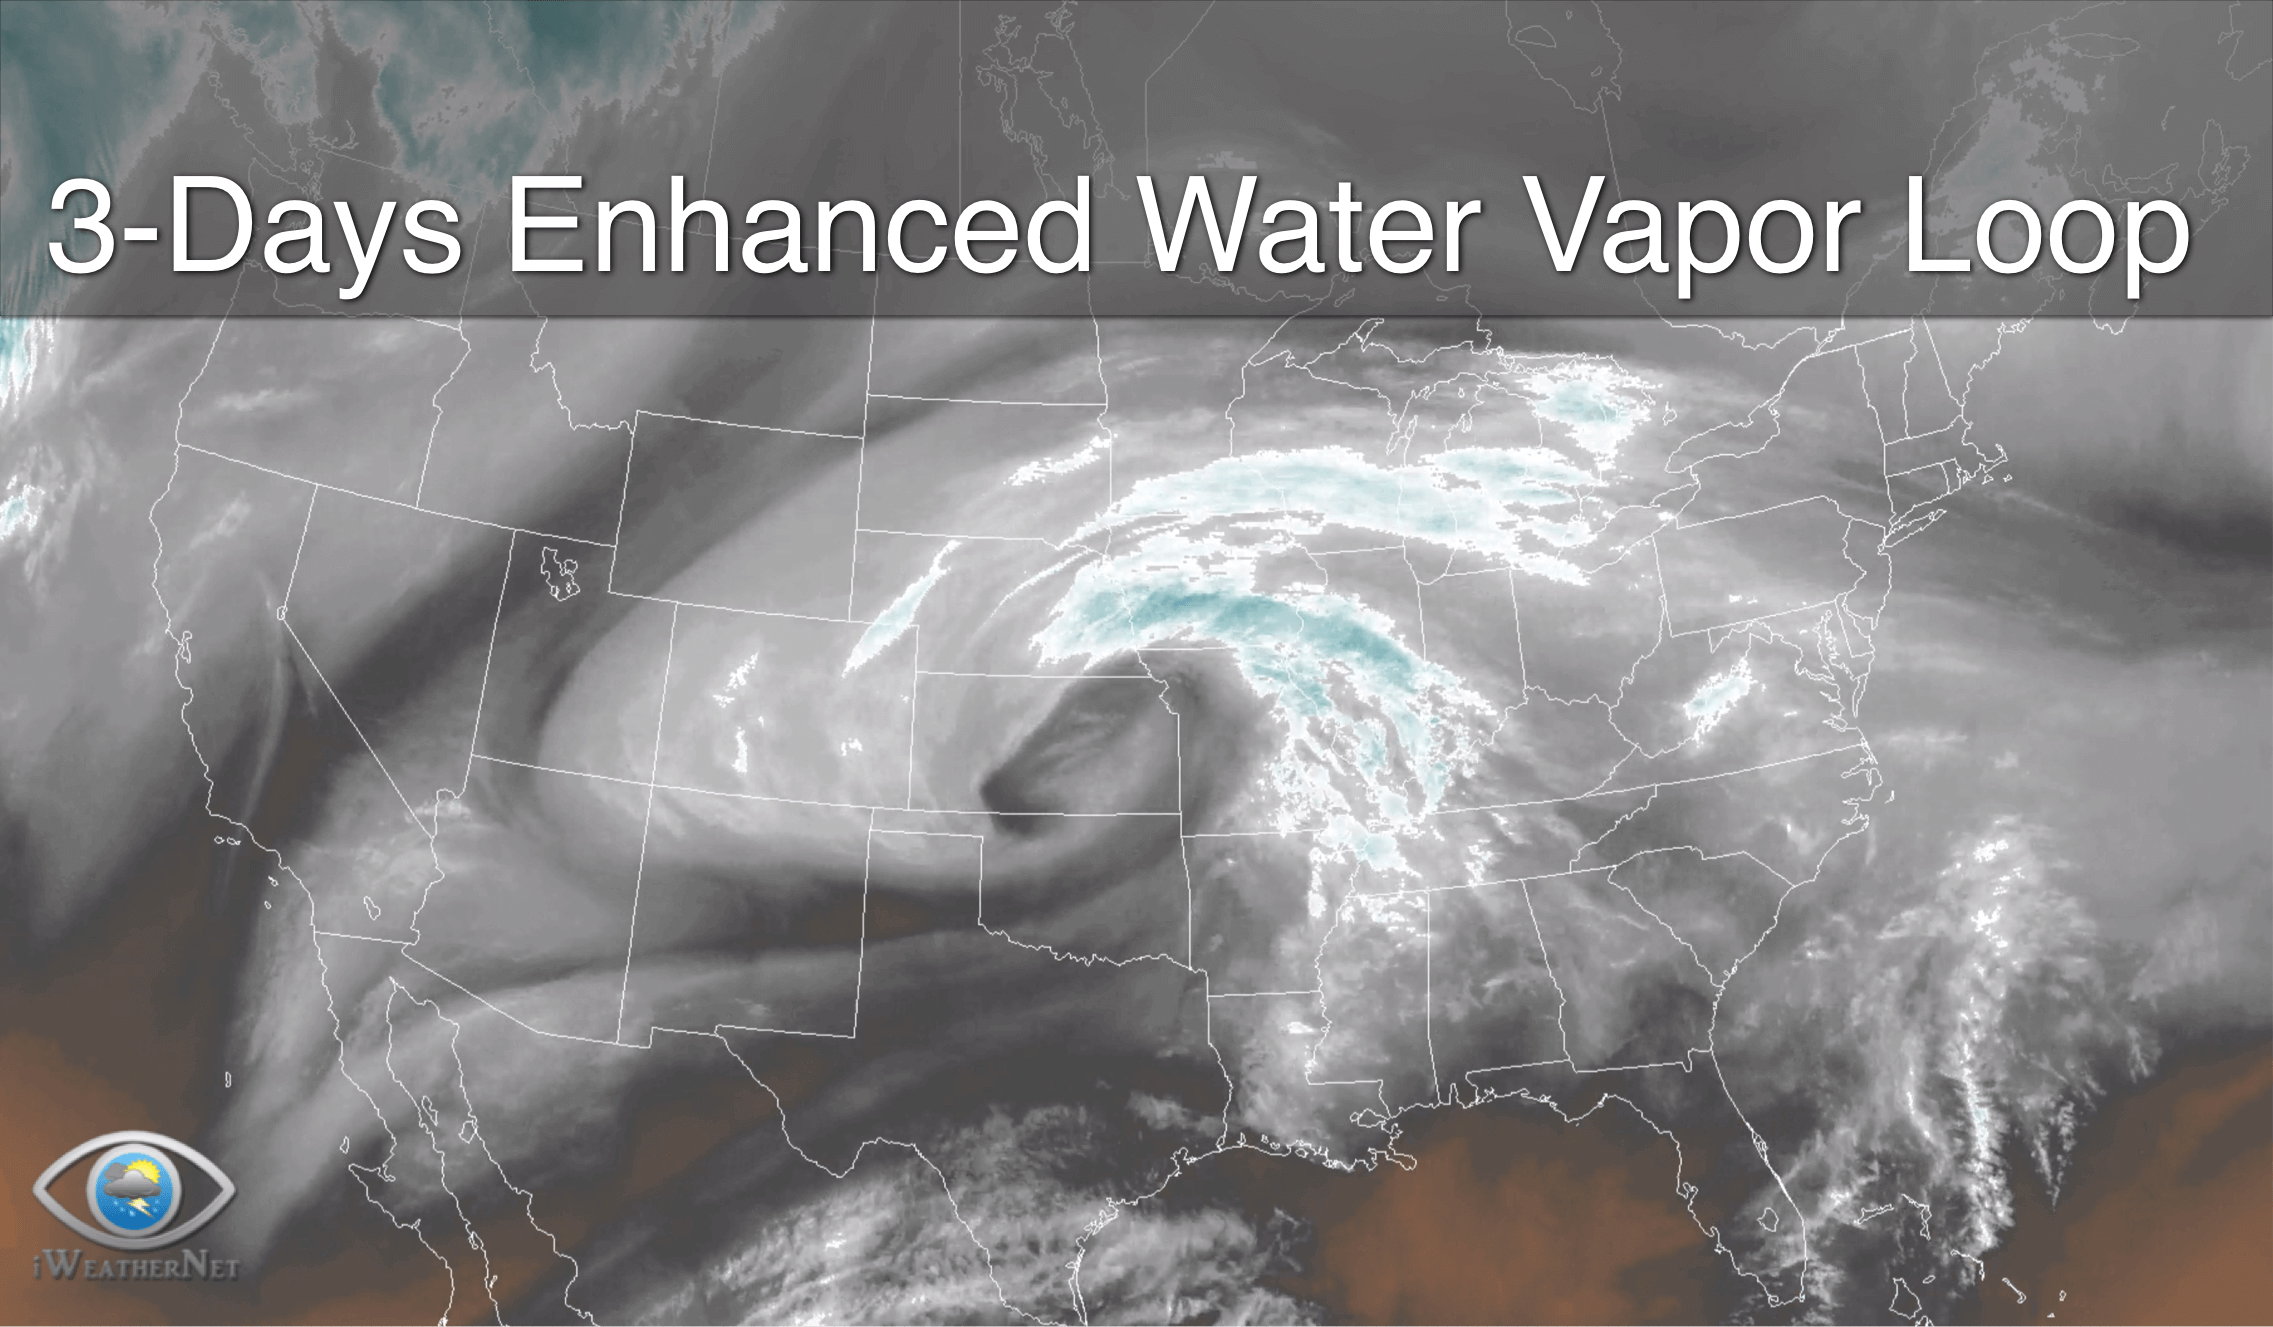 HD Water Vapor Loop with Color Enhancement - Past 3 Days